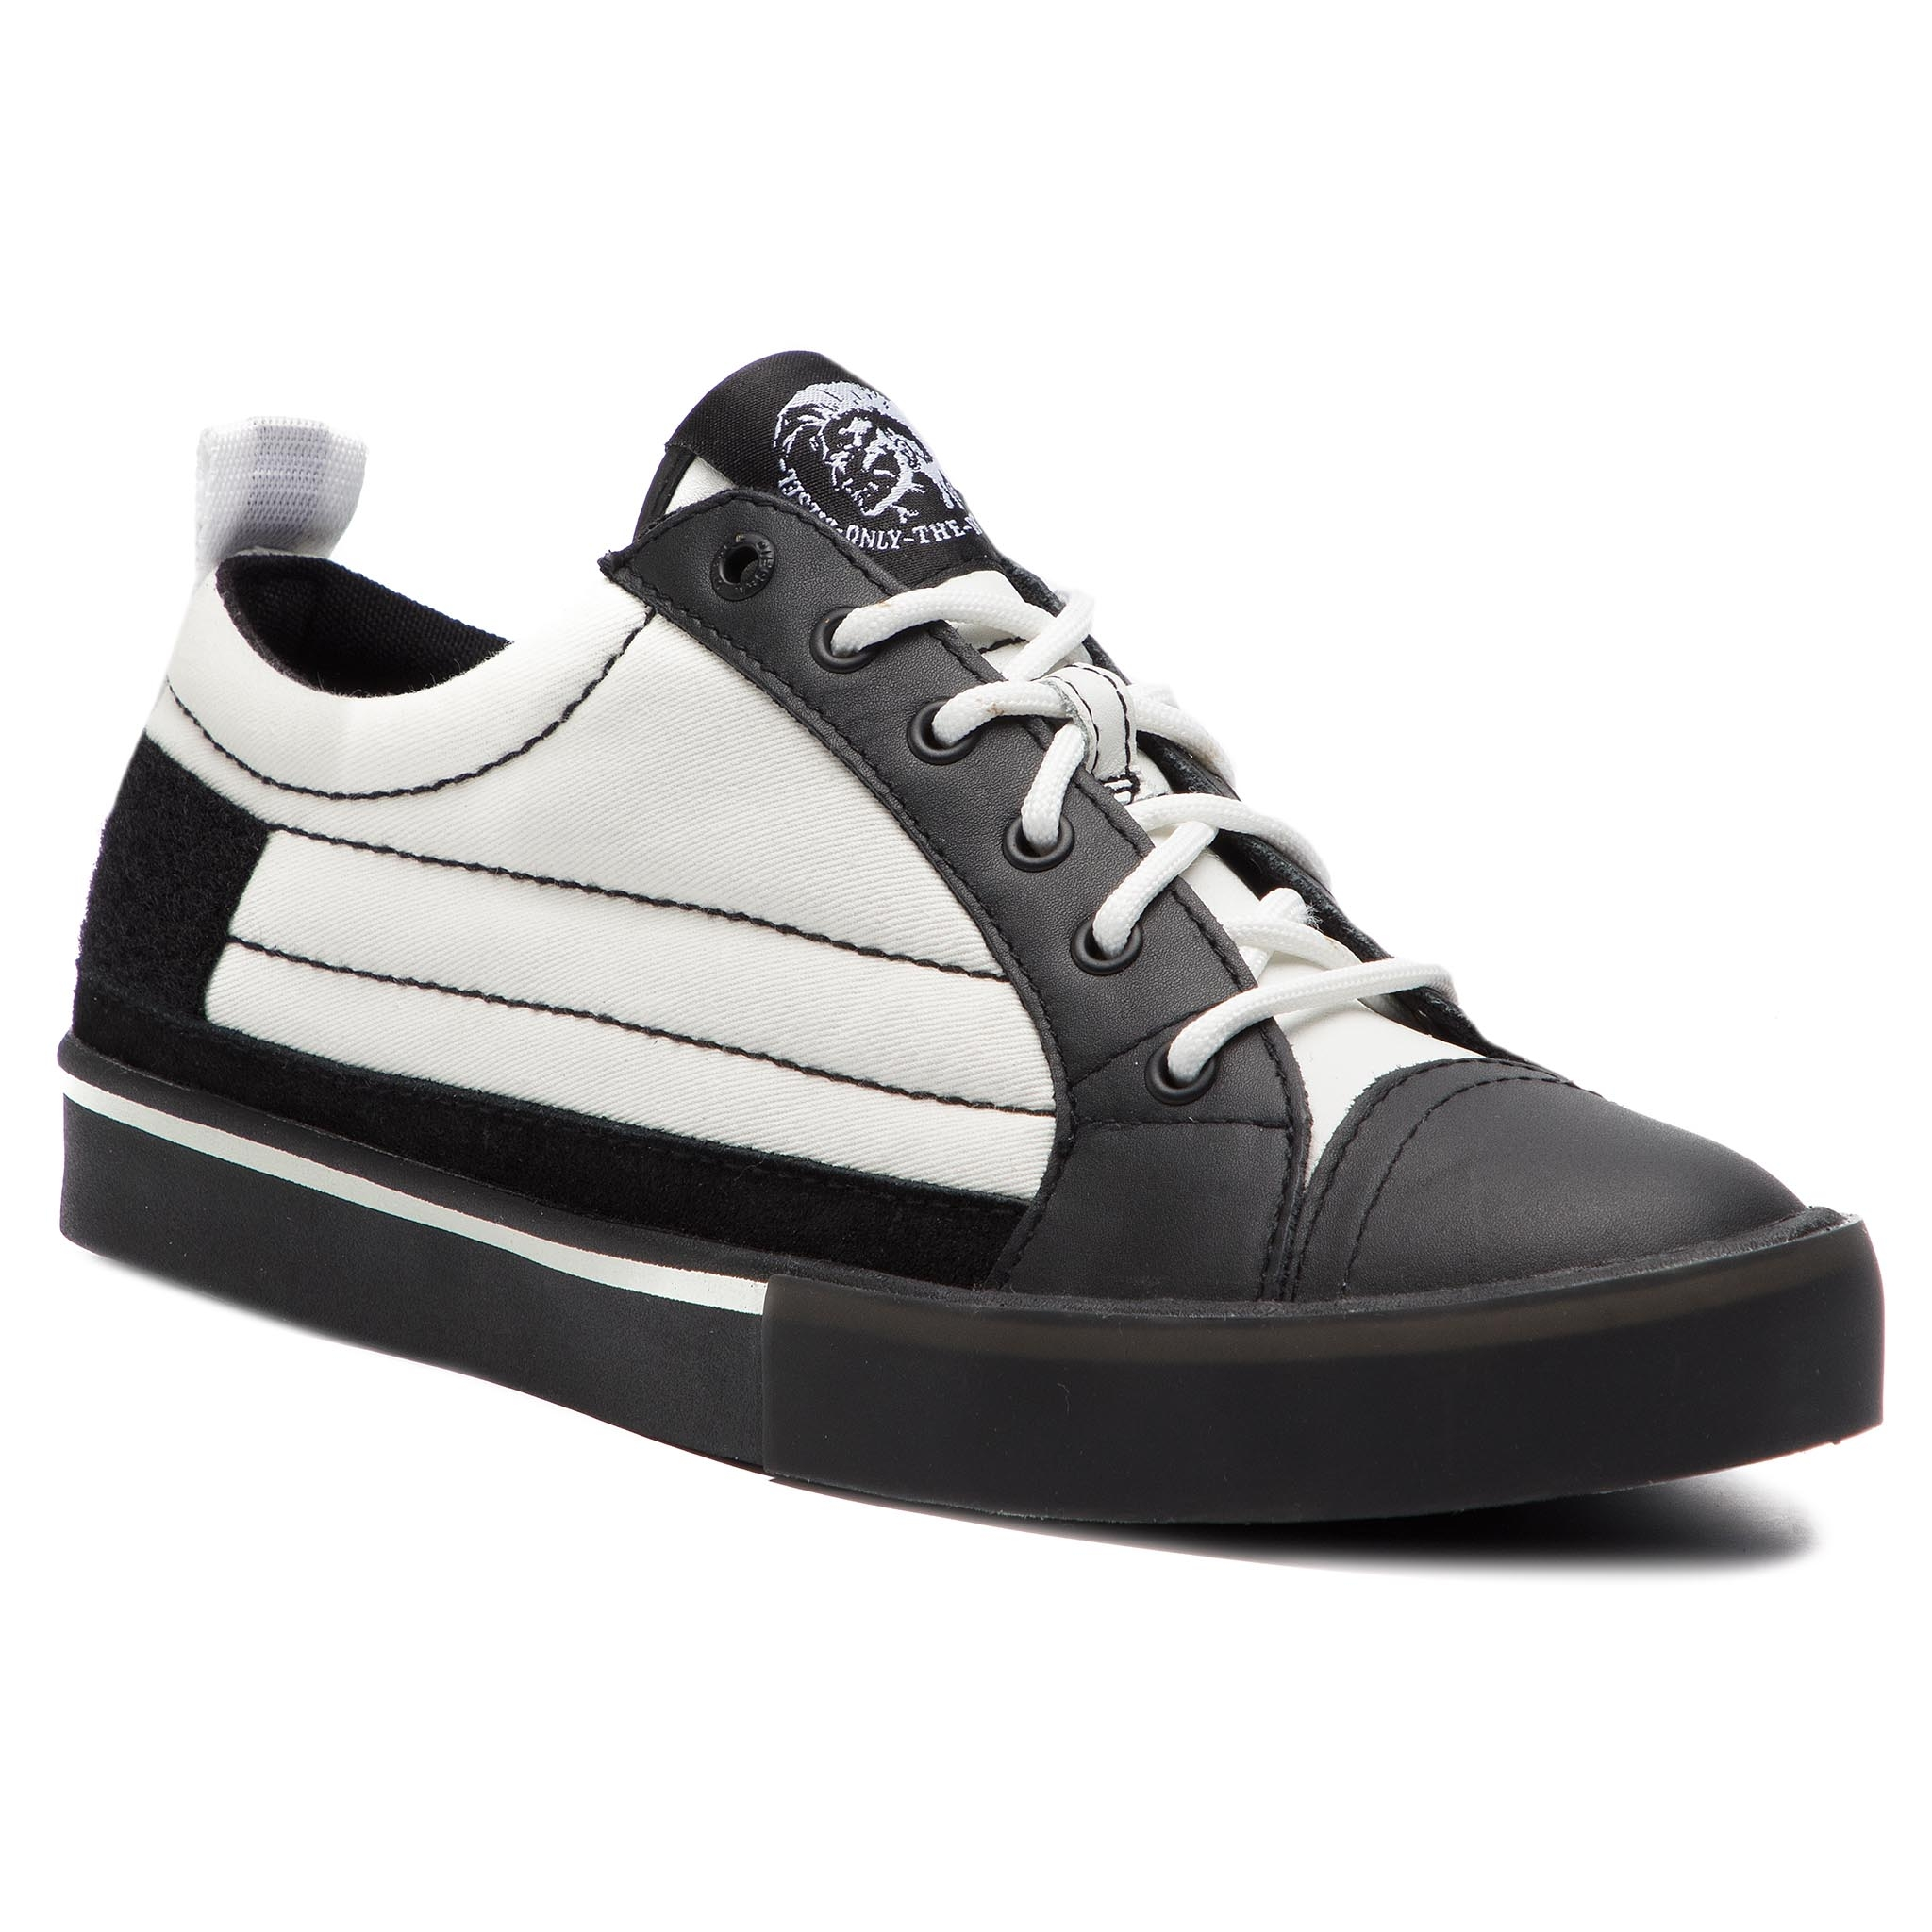 Teniși DIESEL - D-Velows Low Patch Y01870 P2090 H1527 White/Black